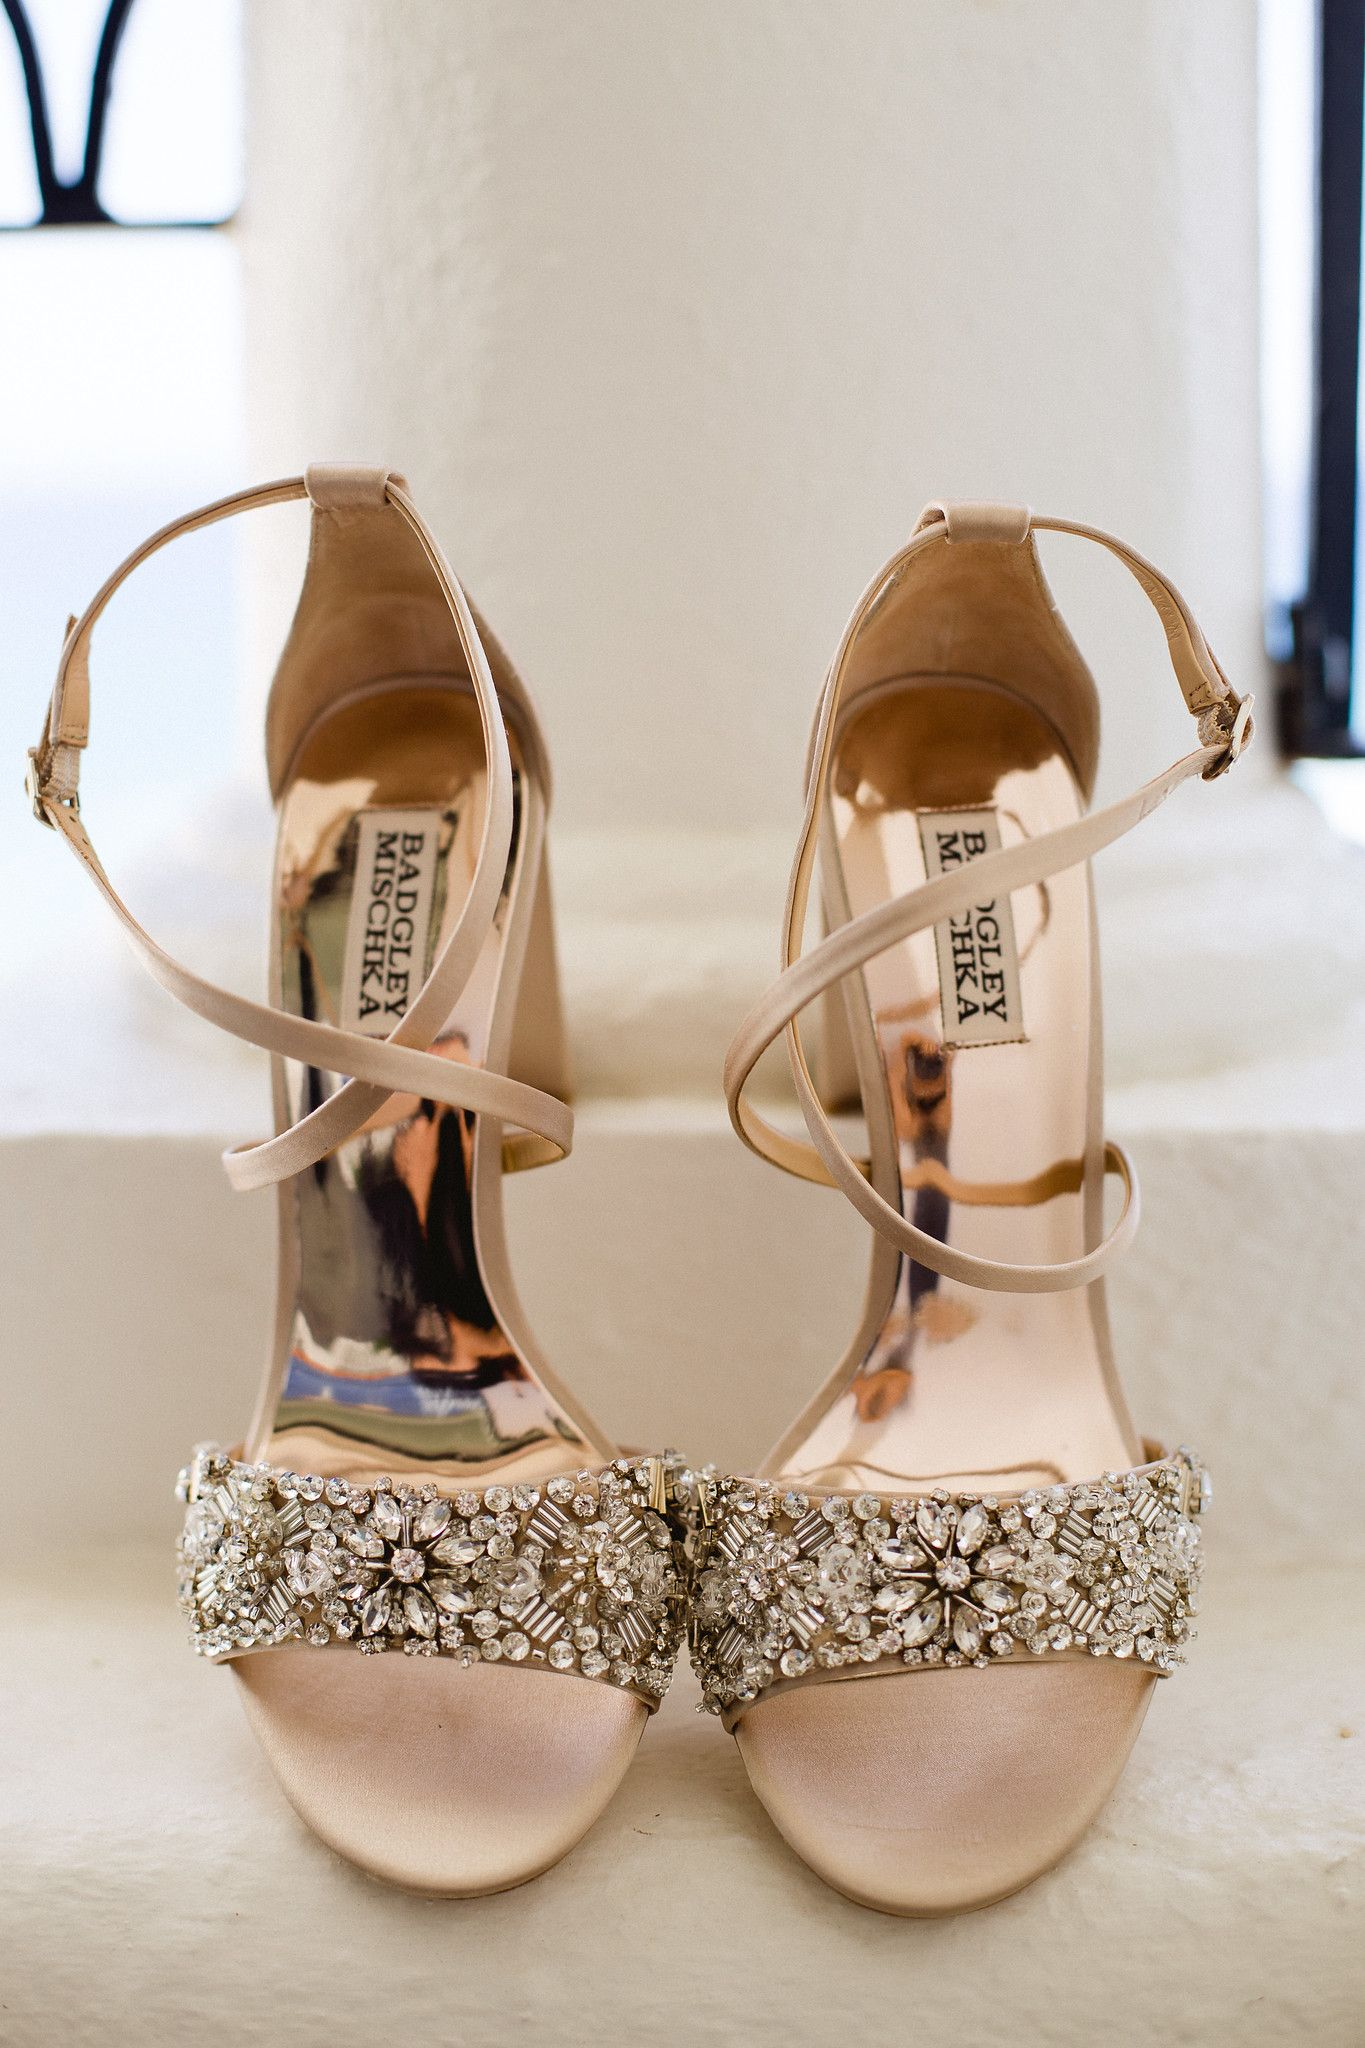 Brides shoes that were from amazing designer Badgley Mischka. They were a bronze color, with sparkle. The perfect wedding shoes to wear on such an important day!